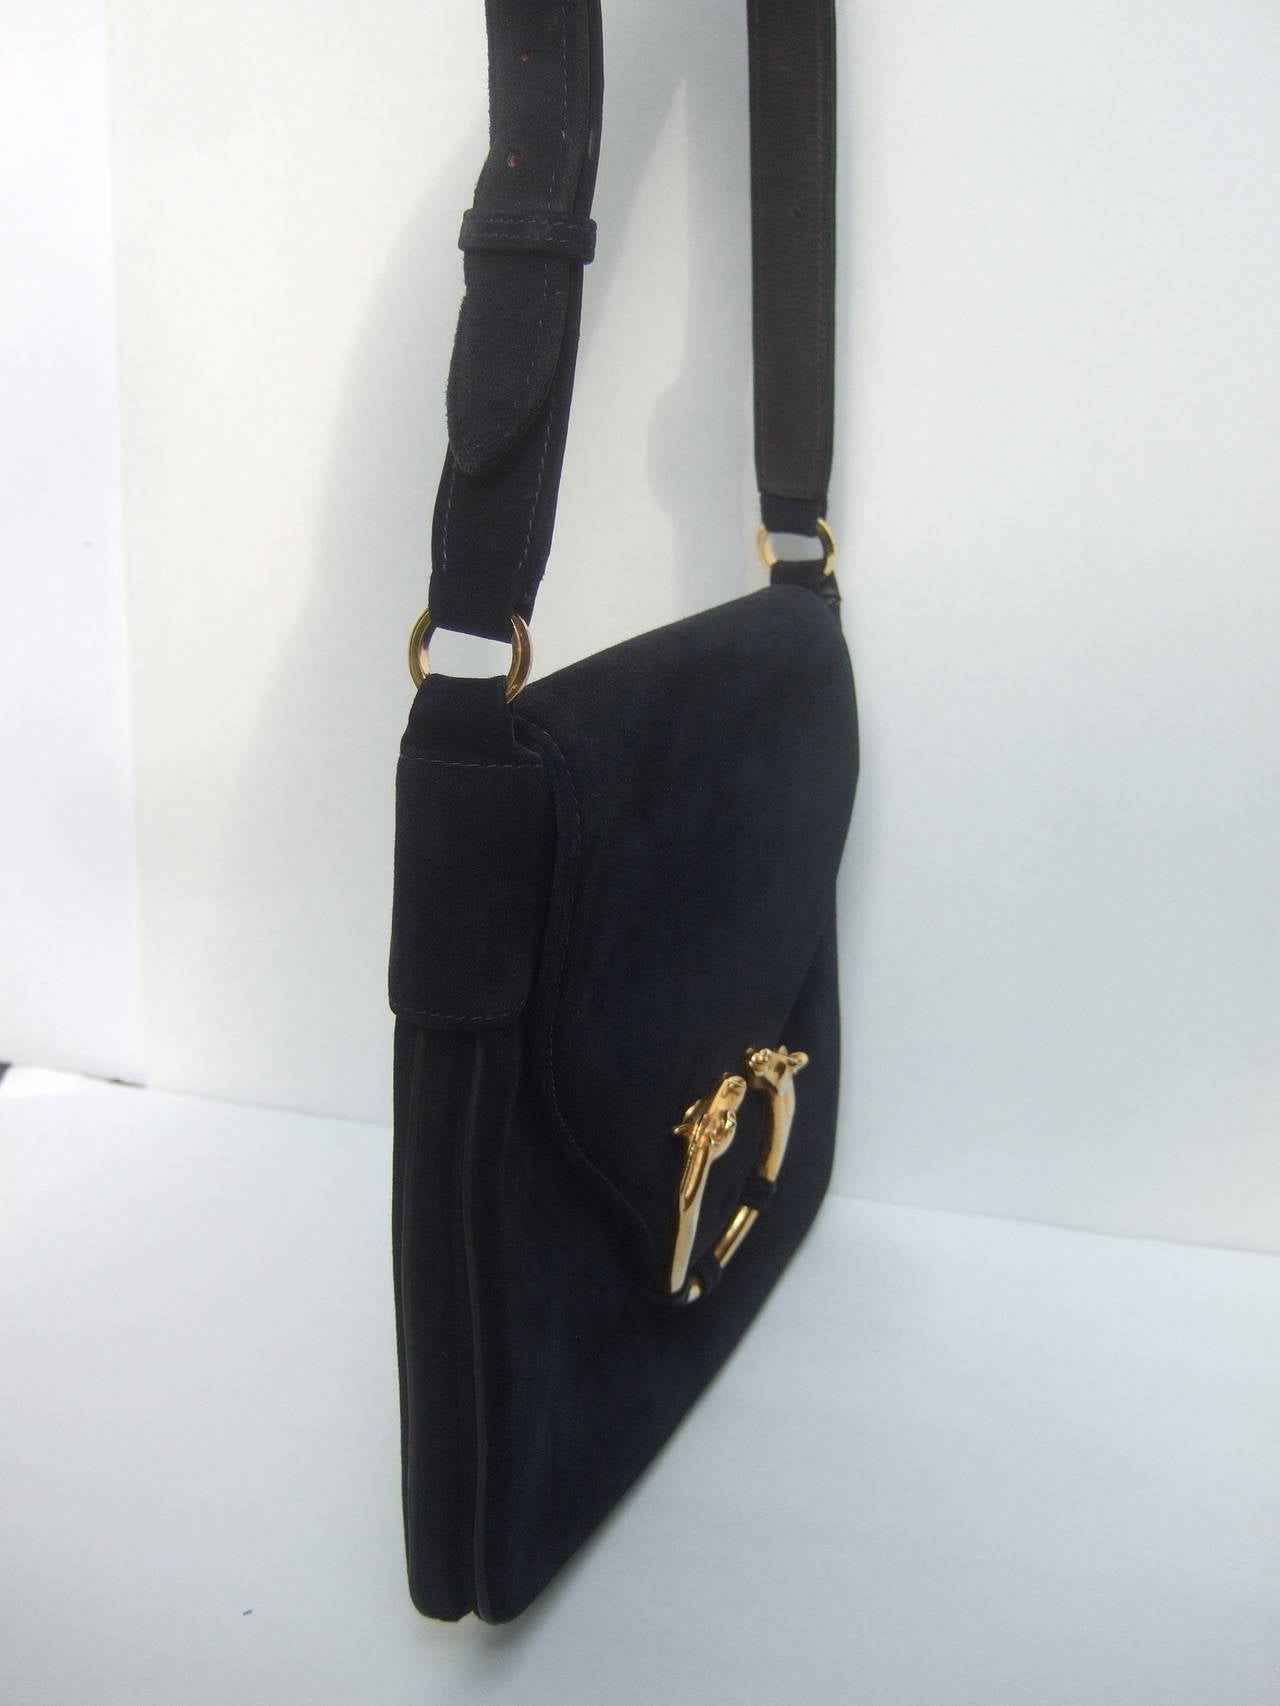 Gucci Equine Emblem Midnight Blue Suede Shoulder Bag c 1970 For Sale 2